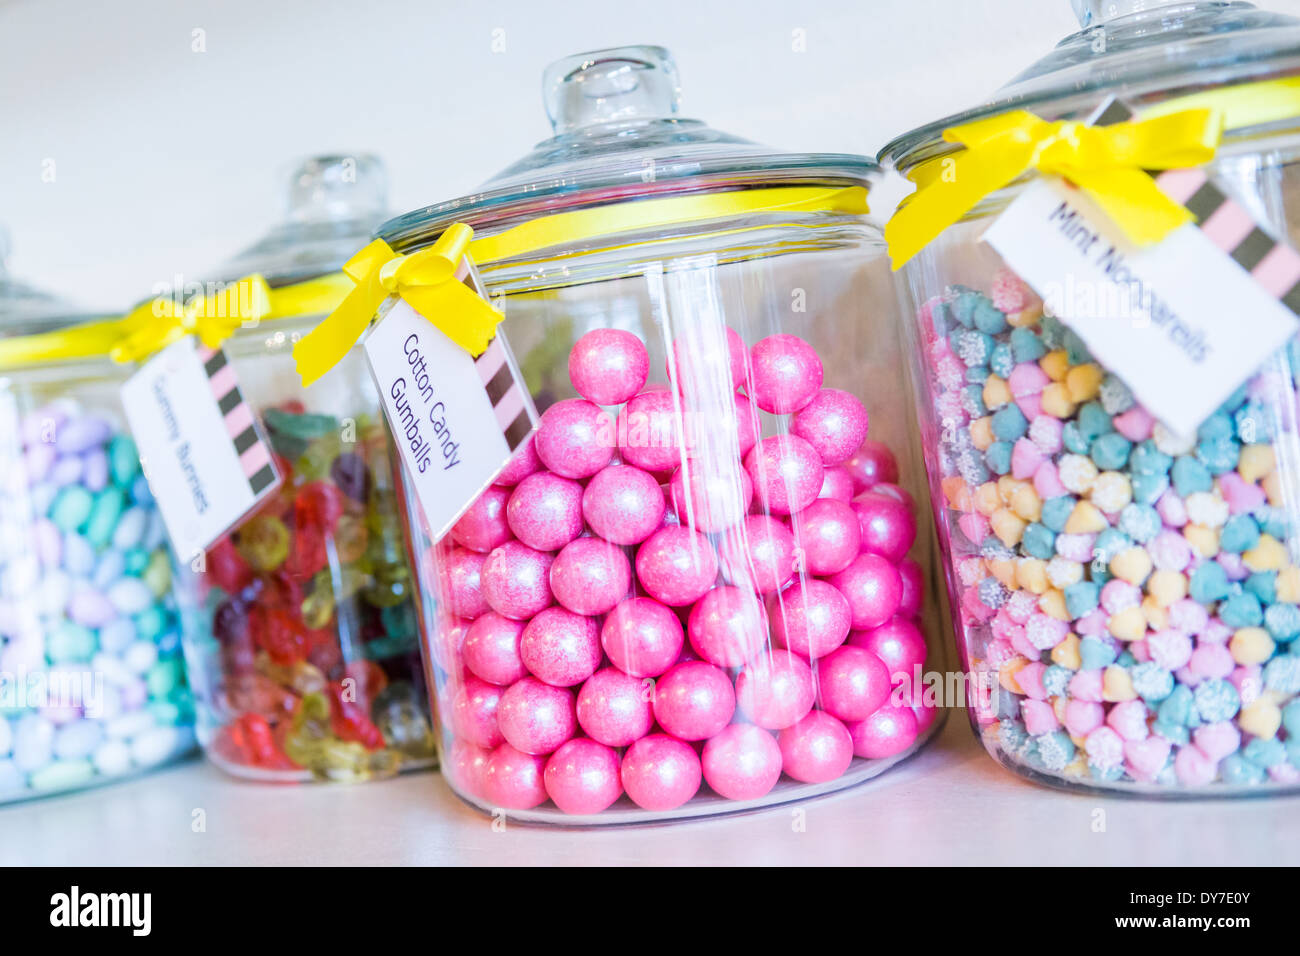 Jars Filled With Sweets Stock Photos & Jars Filled With Sweets Stock ...